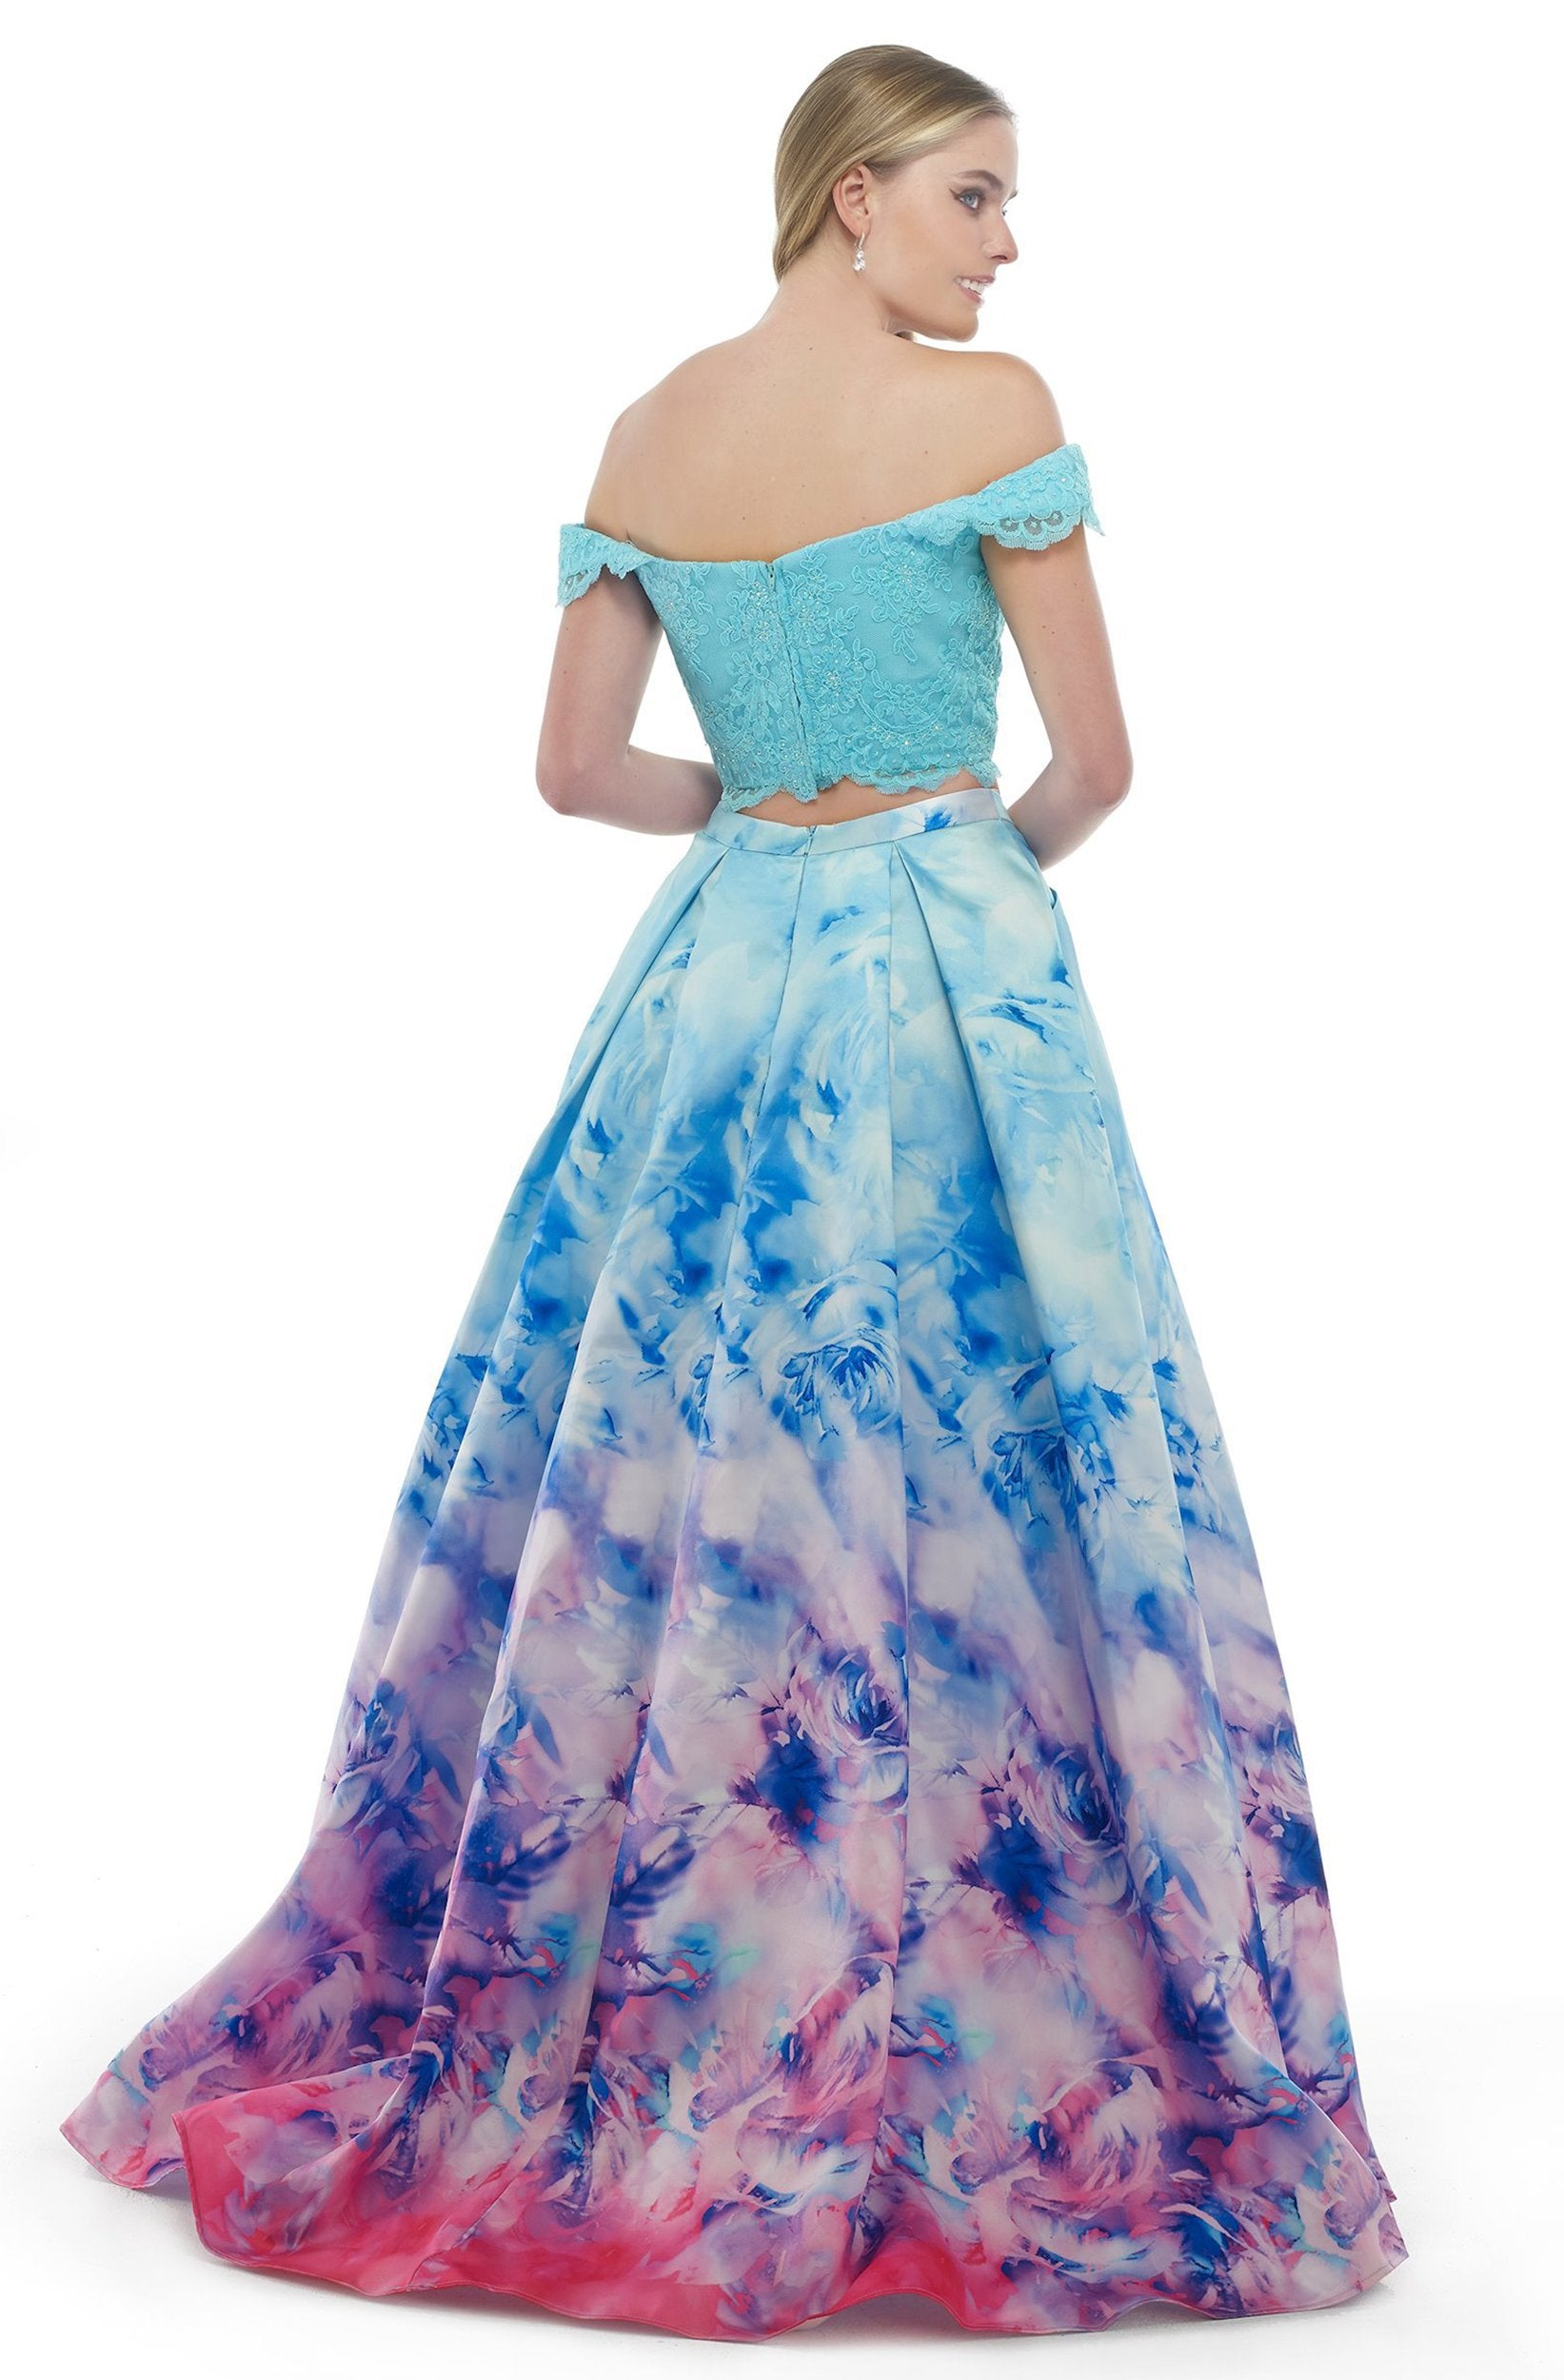 Morrell Maxie - 15836 Two-Piece Off-Shoulder Printed Ballgown in Blue